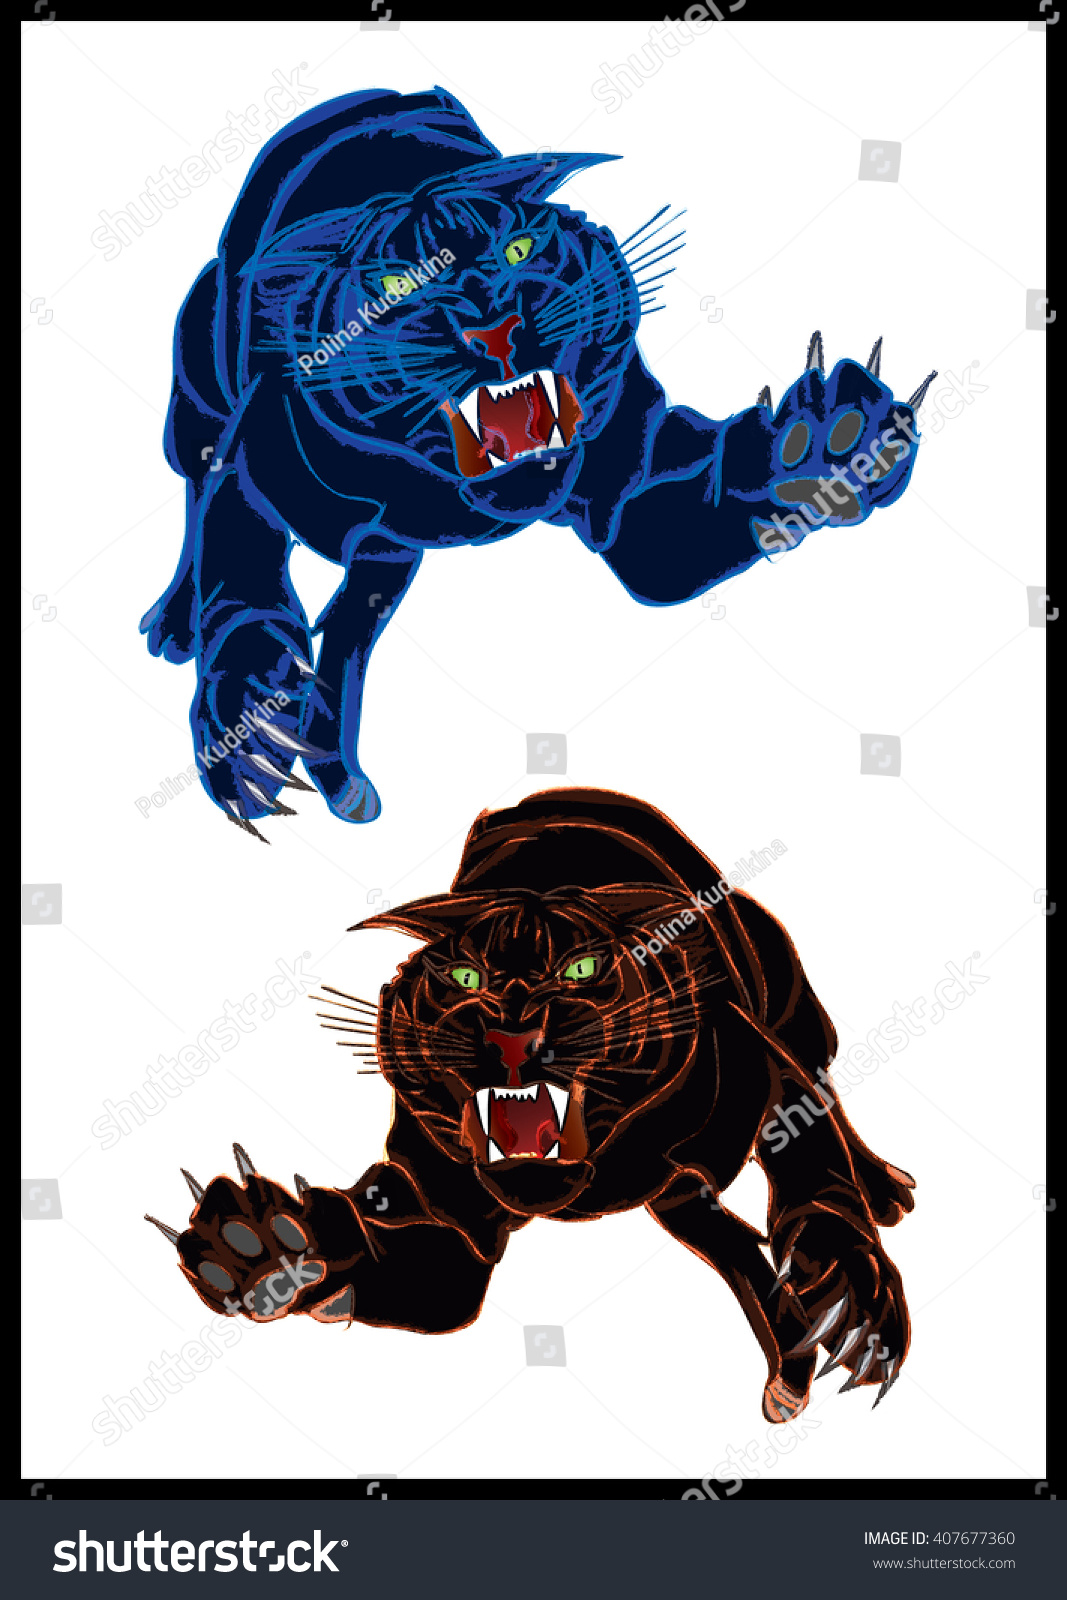 Color cats like - Psychedelic Predatory Cats More Like Black Tigers In Blue And Orange Color Isolated On